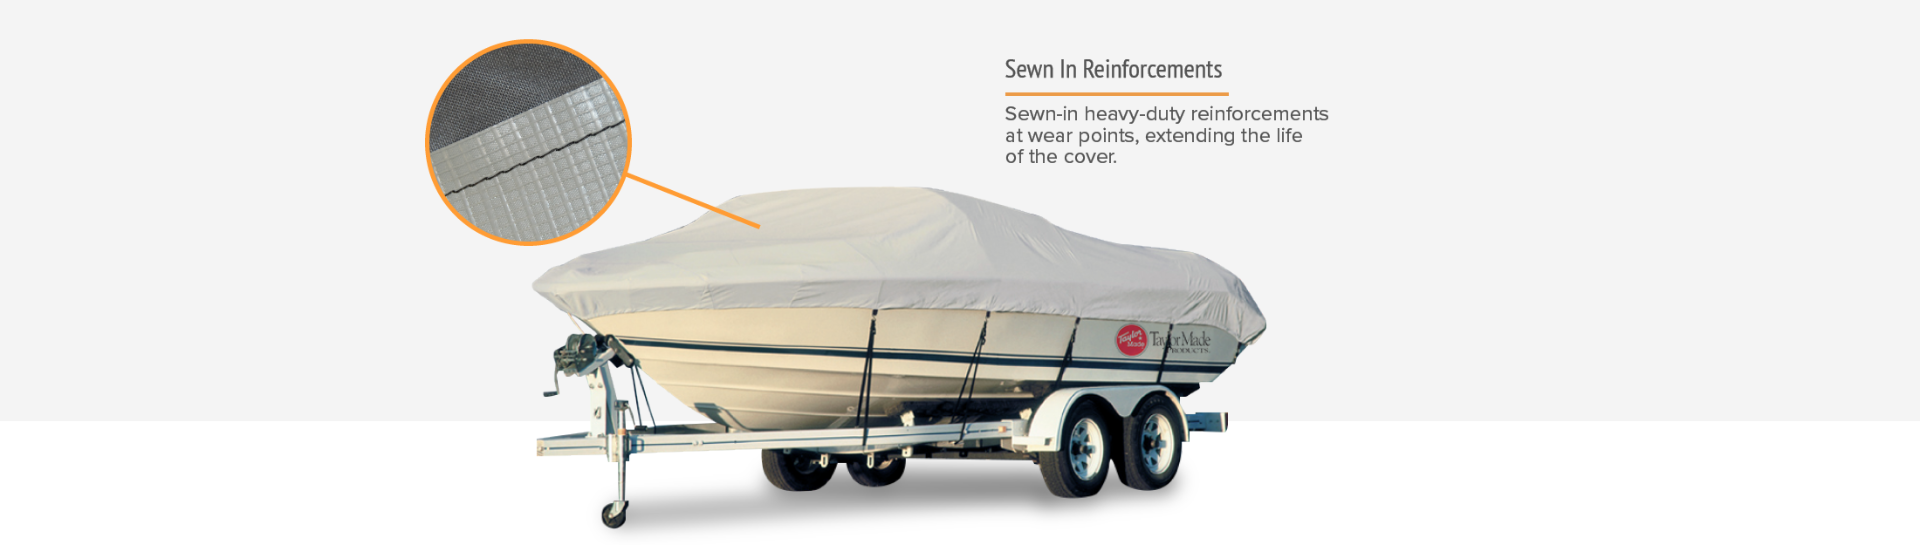 Taylor boat cover reinforcements